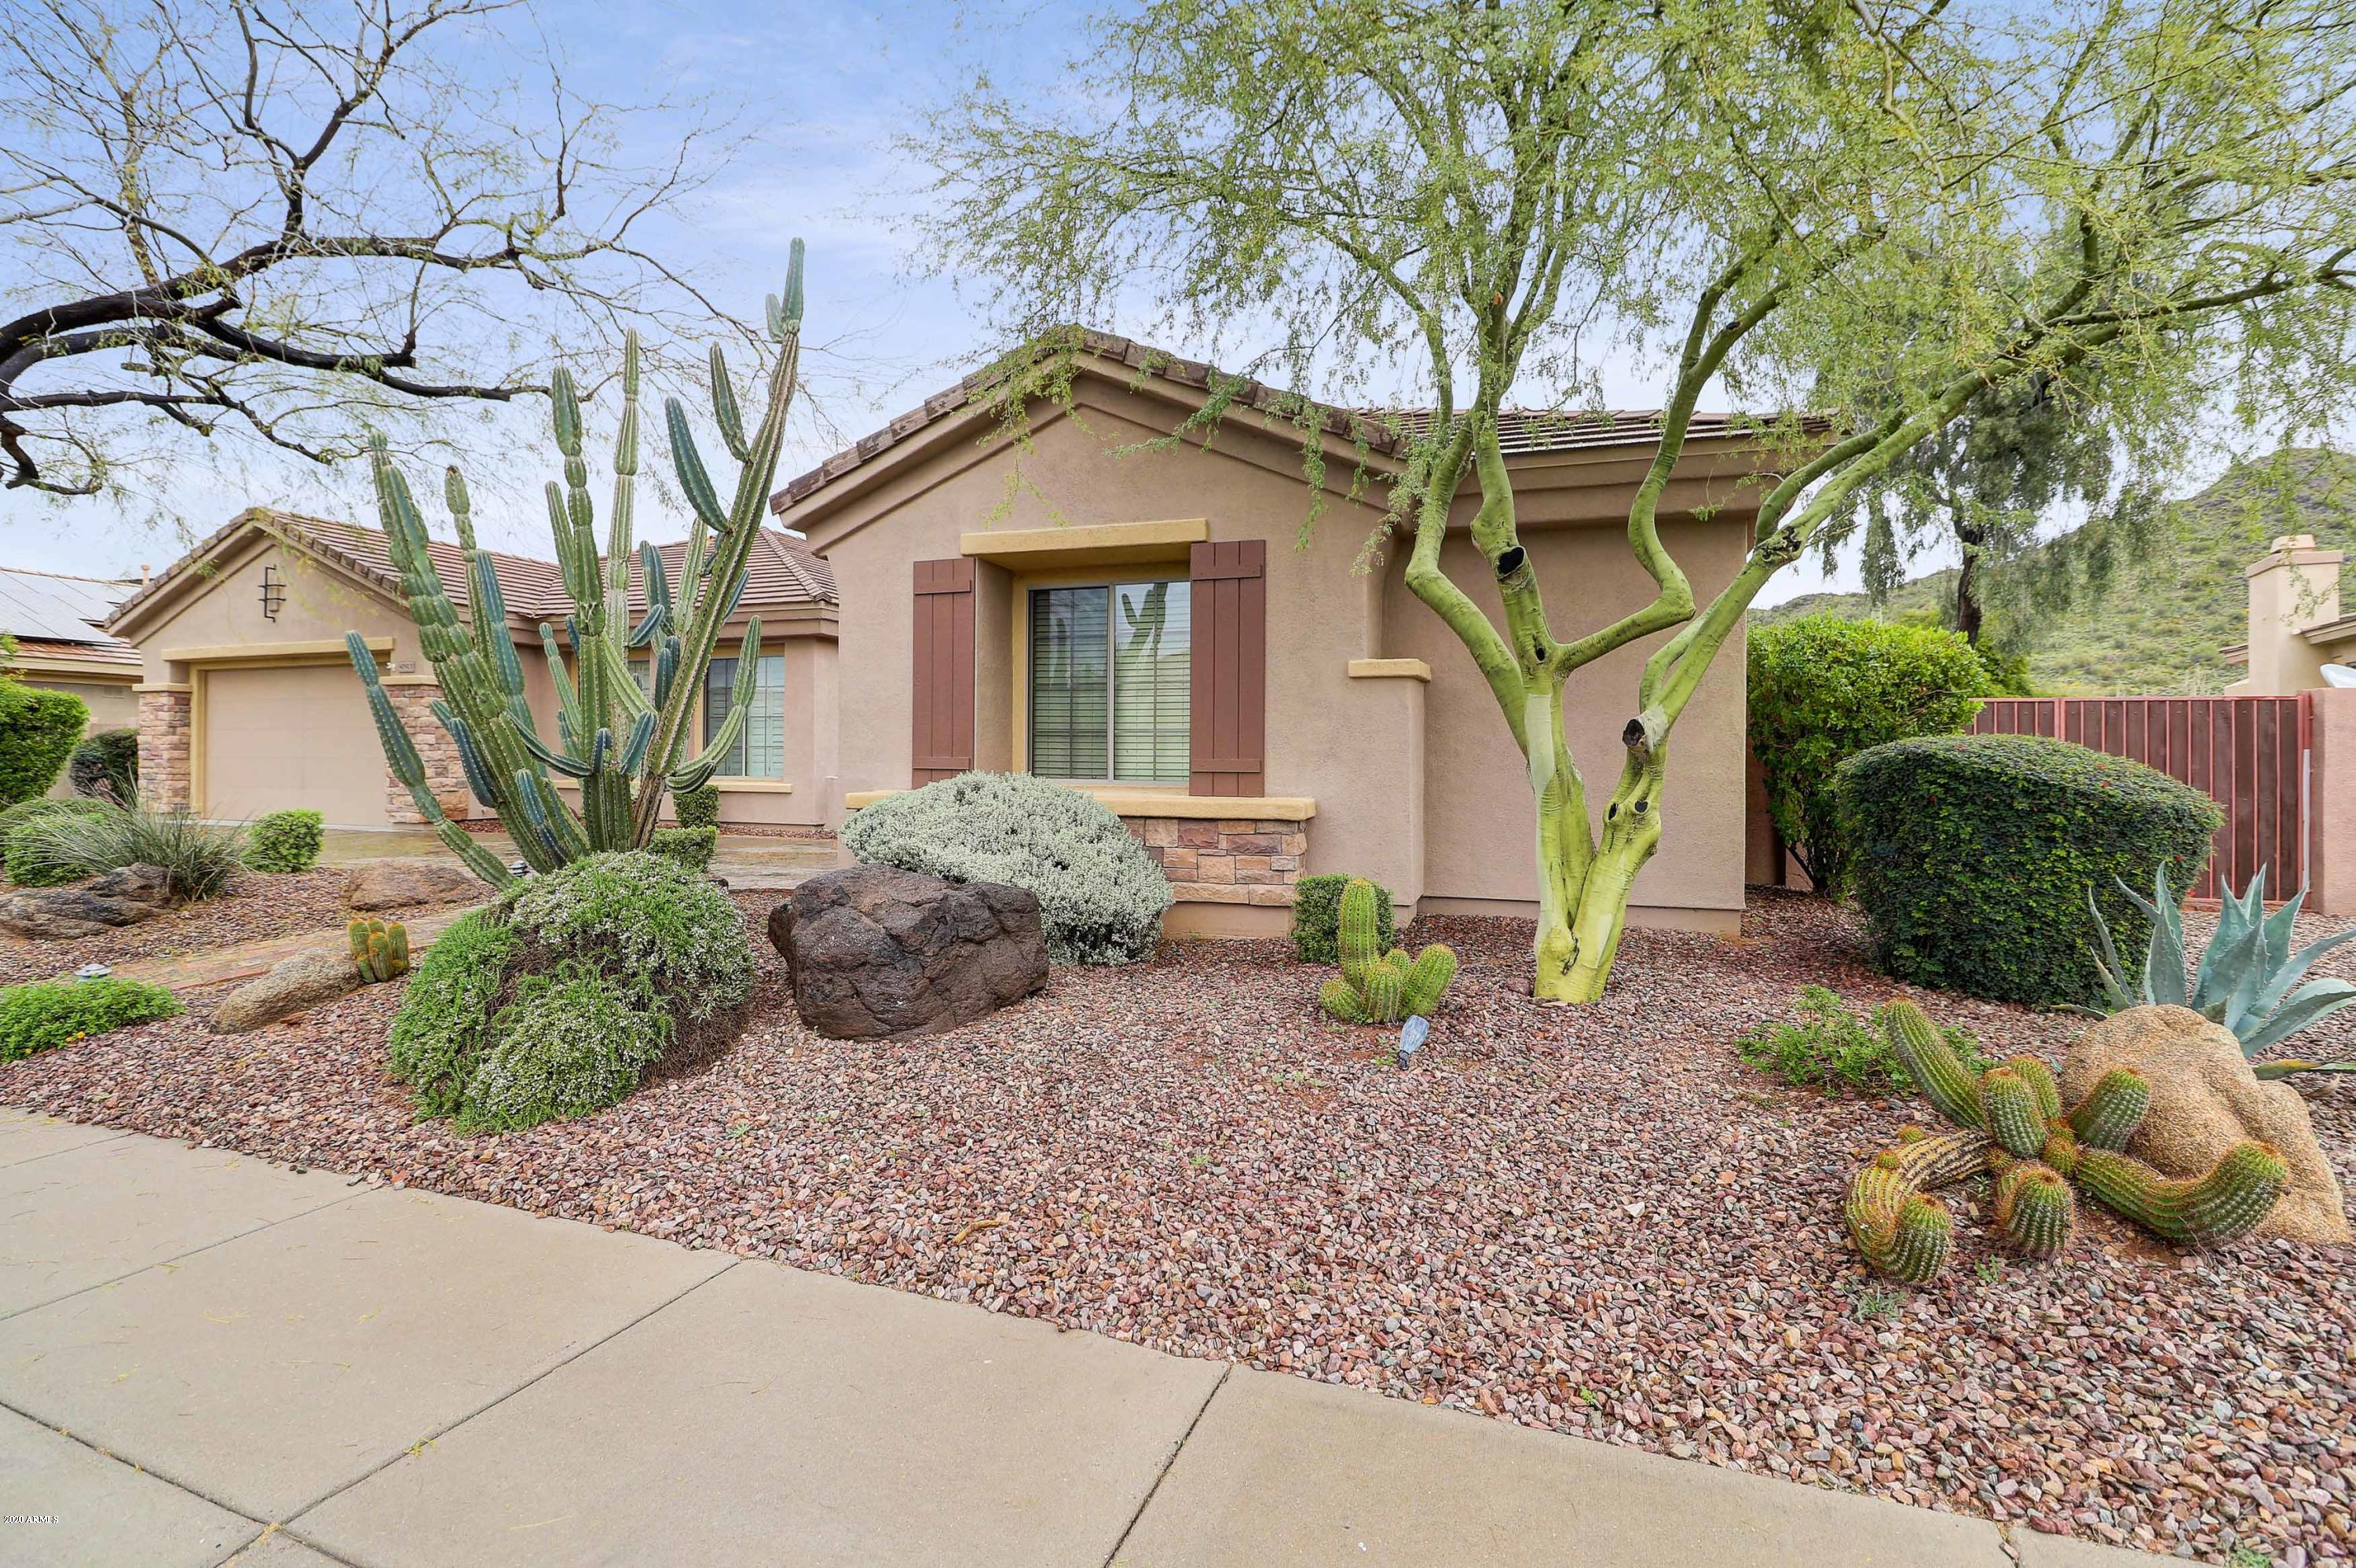 Photo of 41913 N SIGNAL HILL Court, Phoenix, AZ 85086